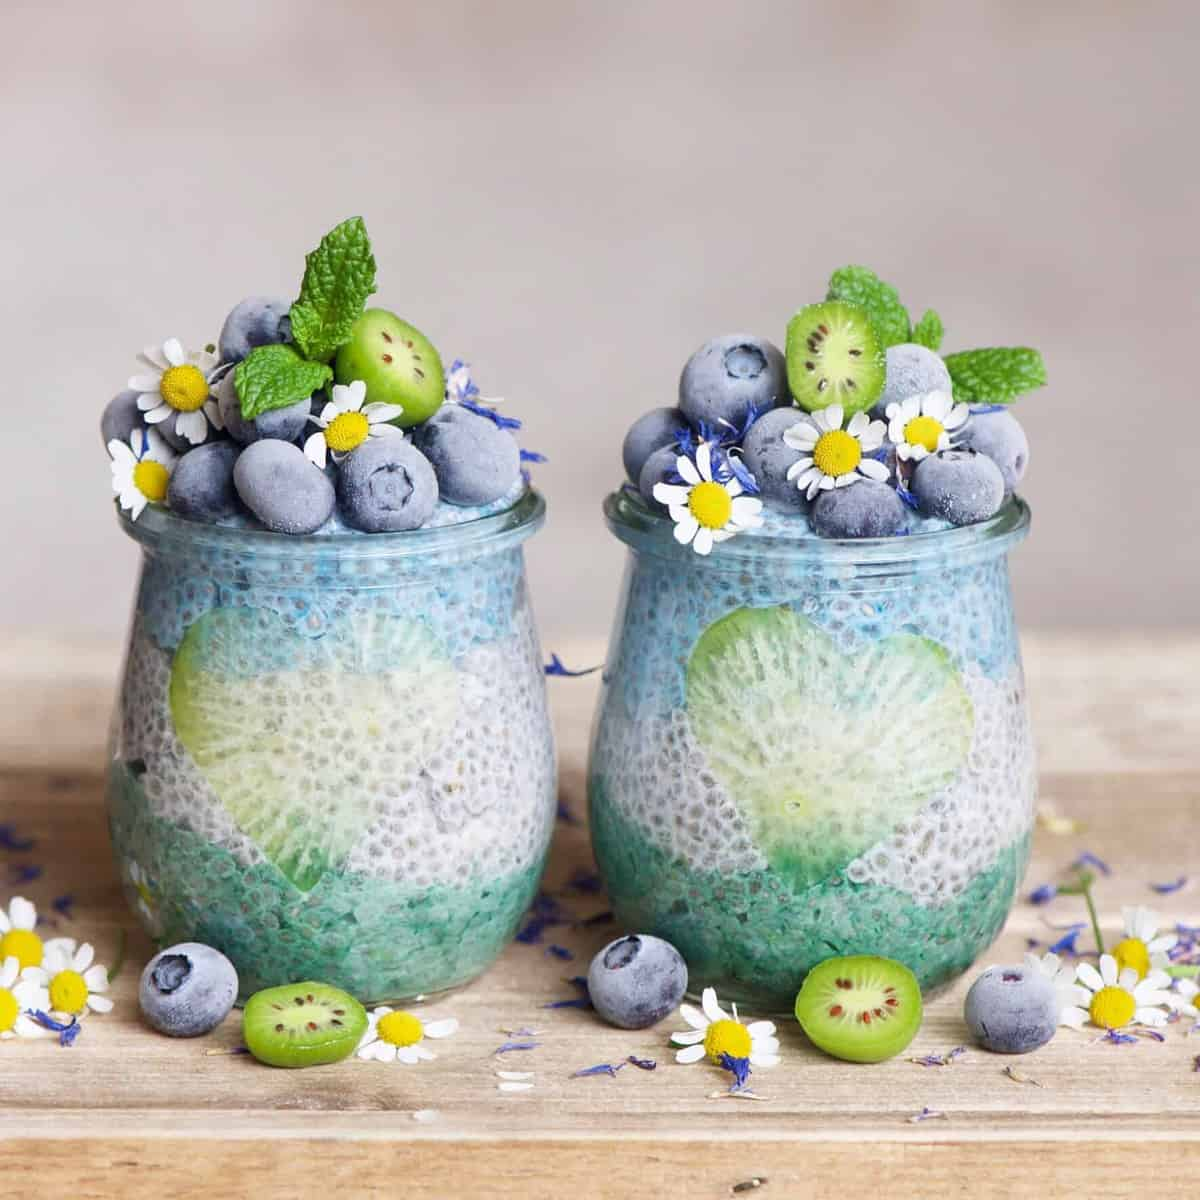 This is such a simple but beautiful chia seed pudding recipe for a morning, oceanic chia pudding. Chia seeds are packed full of nutritional goodness and the spirulina powders are used to boost the recipes' already amazing health properties ( and create the gorgeous colours). The maple syrup and vanilla create a lovely subtle sweet flavour, while being refined sugar-free.